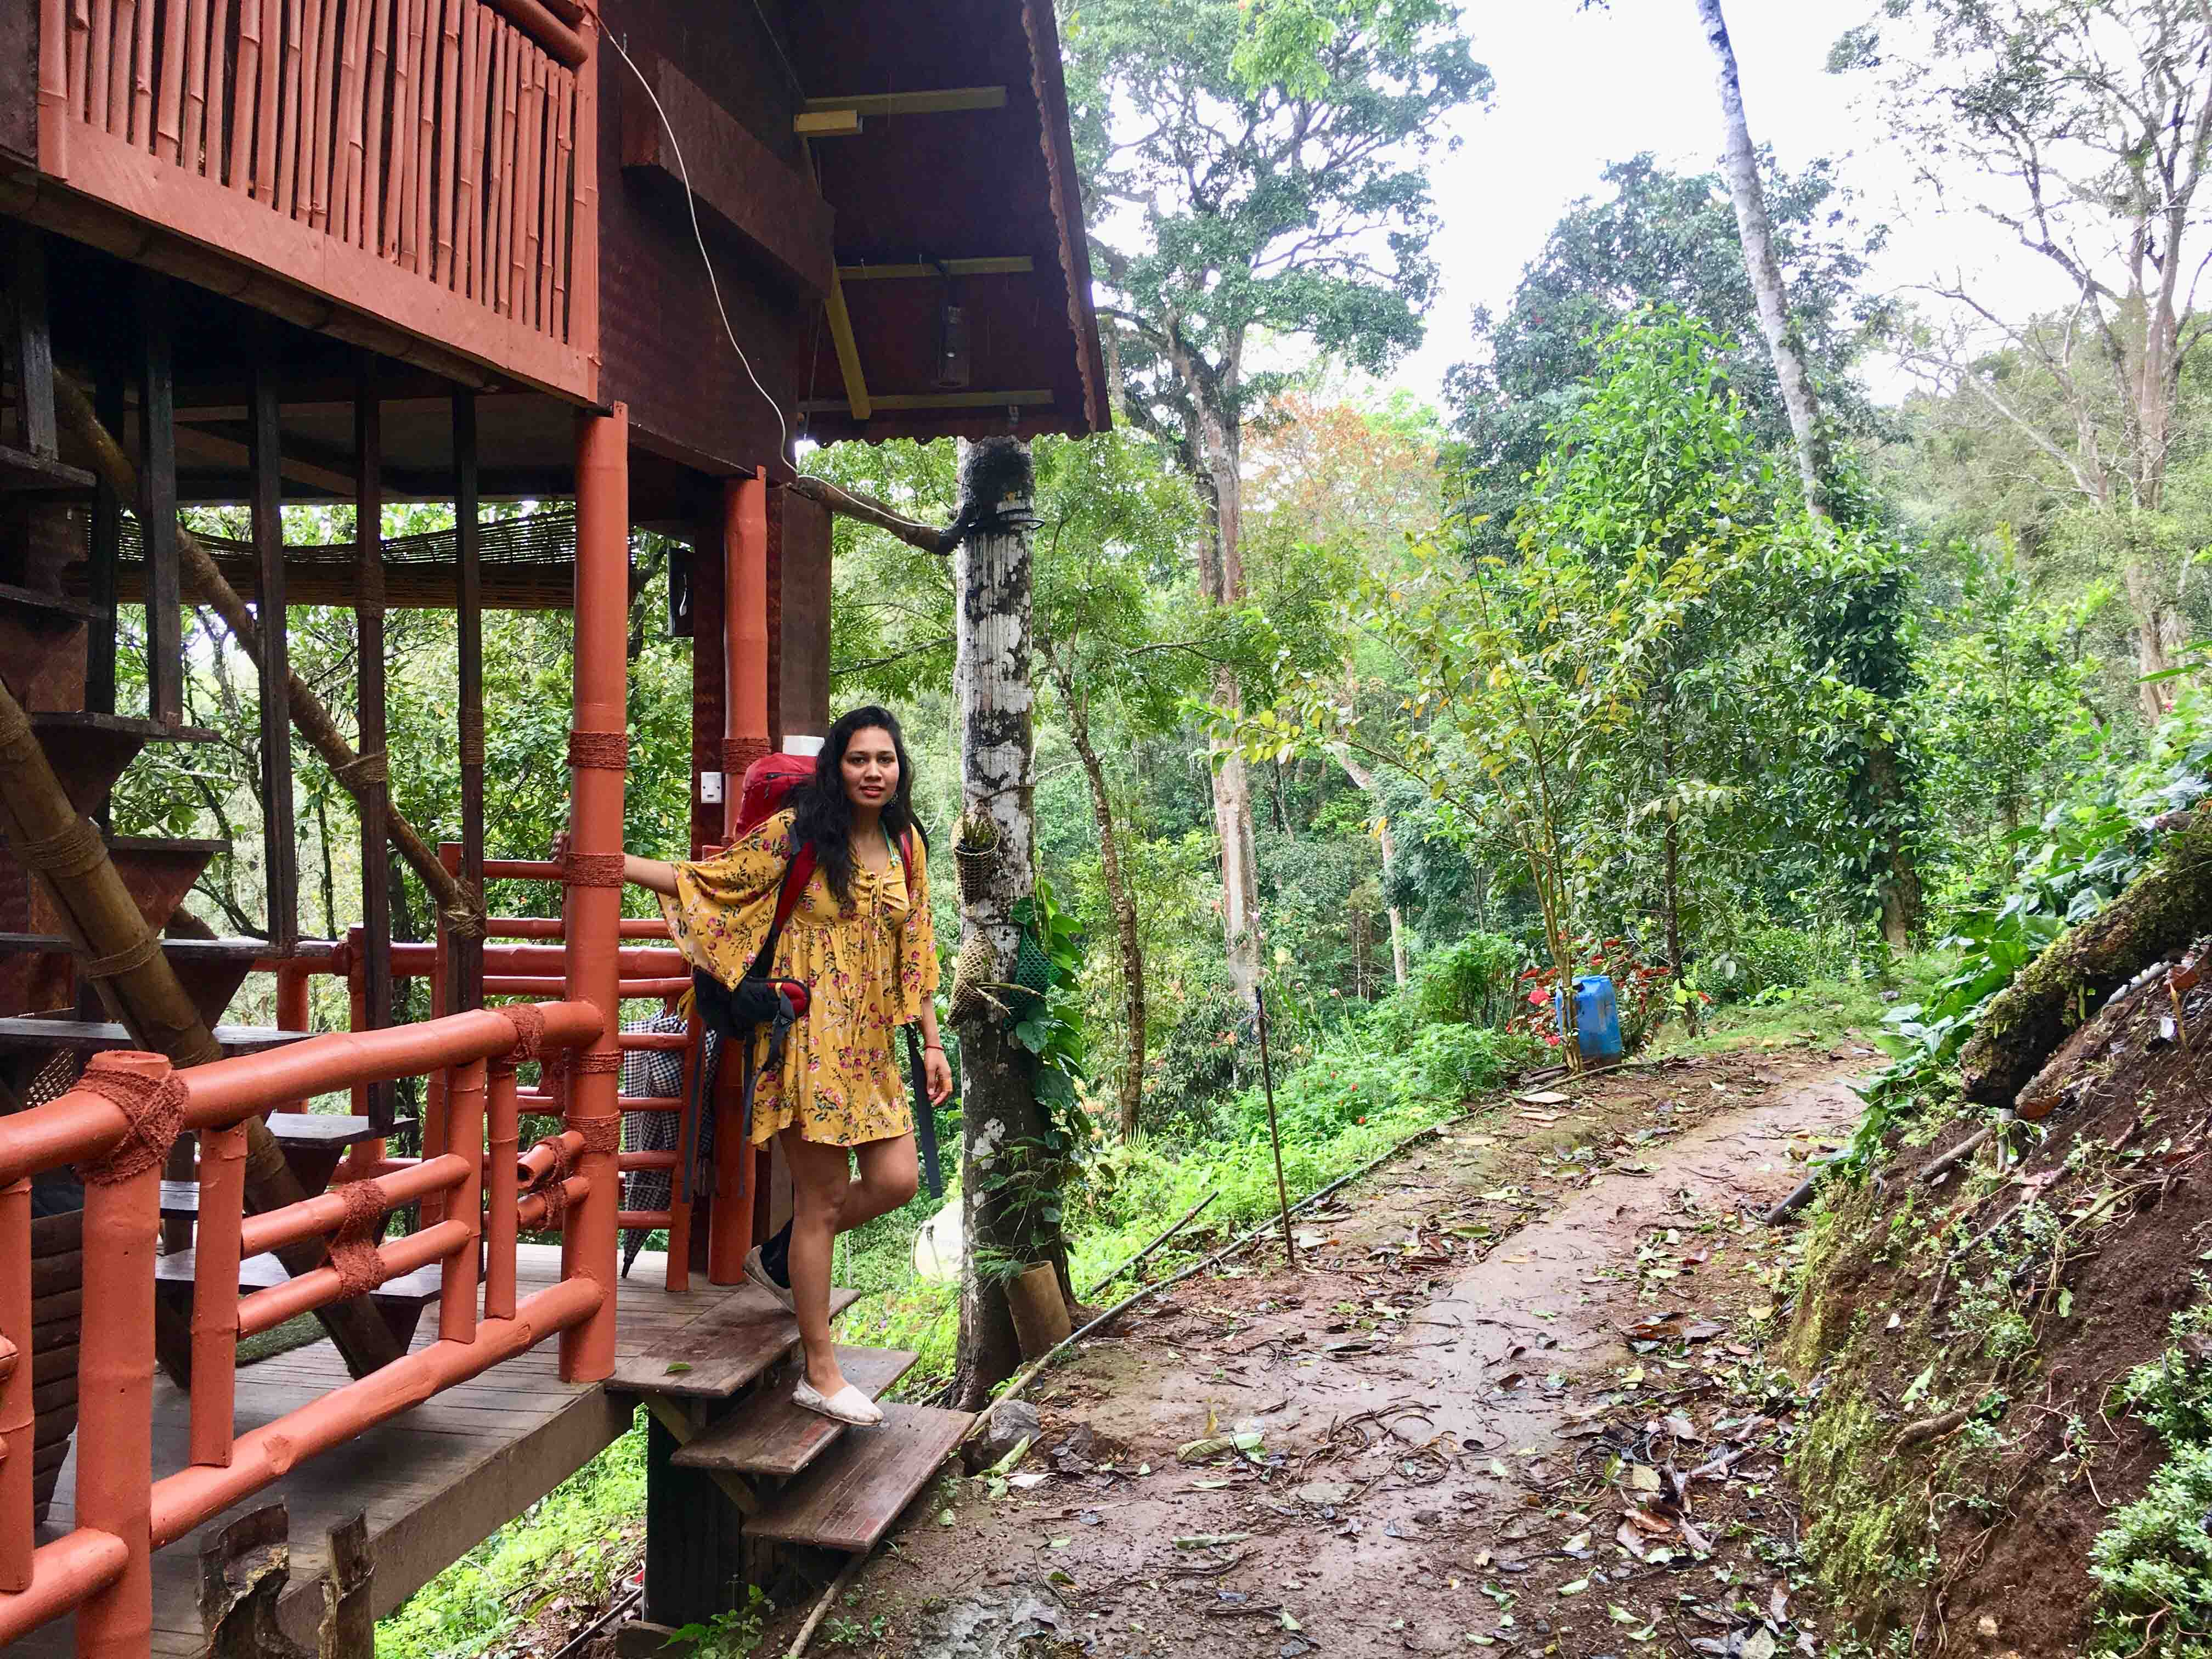 How_to_Plan_Your_first_diy_solo_trip_Female_Travel_Blog_Indian_The_sassy_pilgrim_blogger_Tips_Indonesia